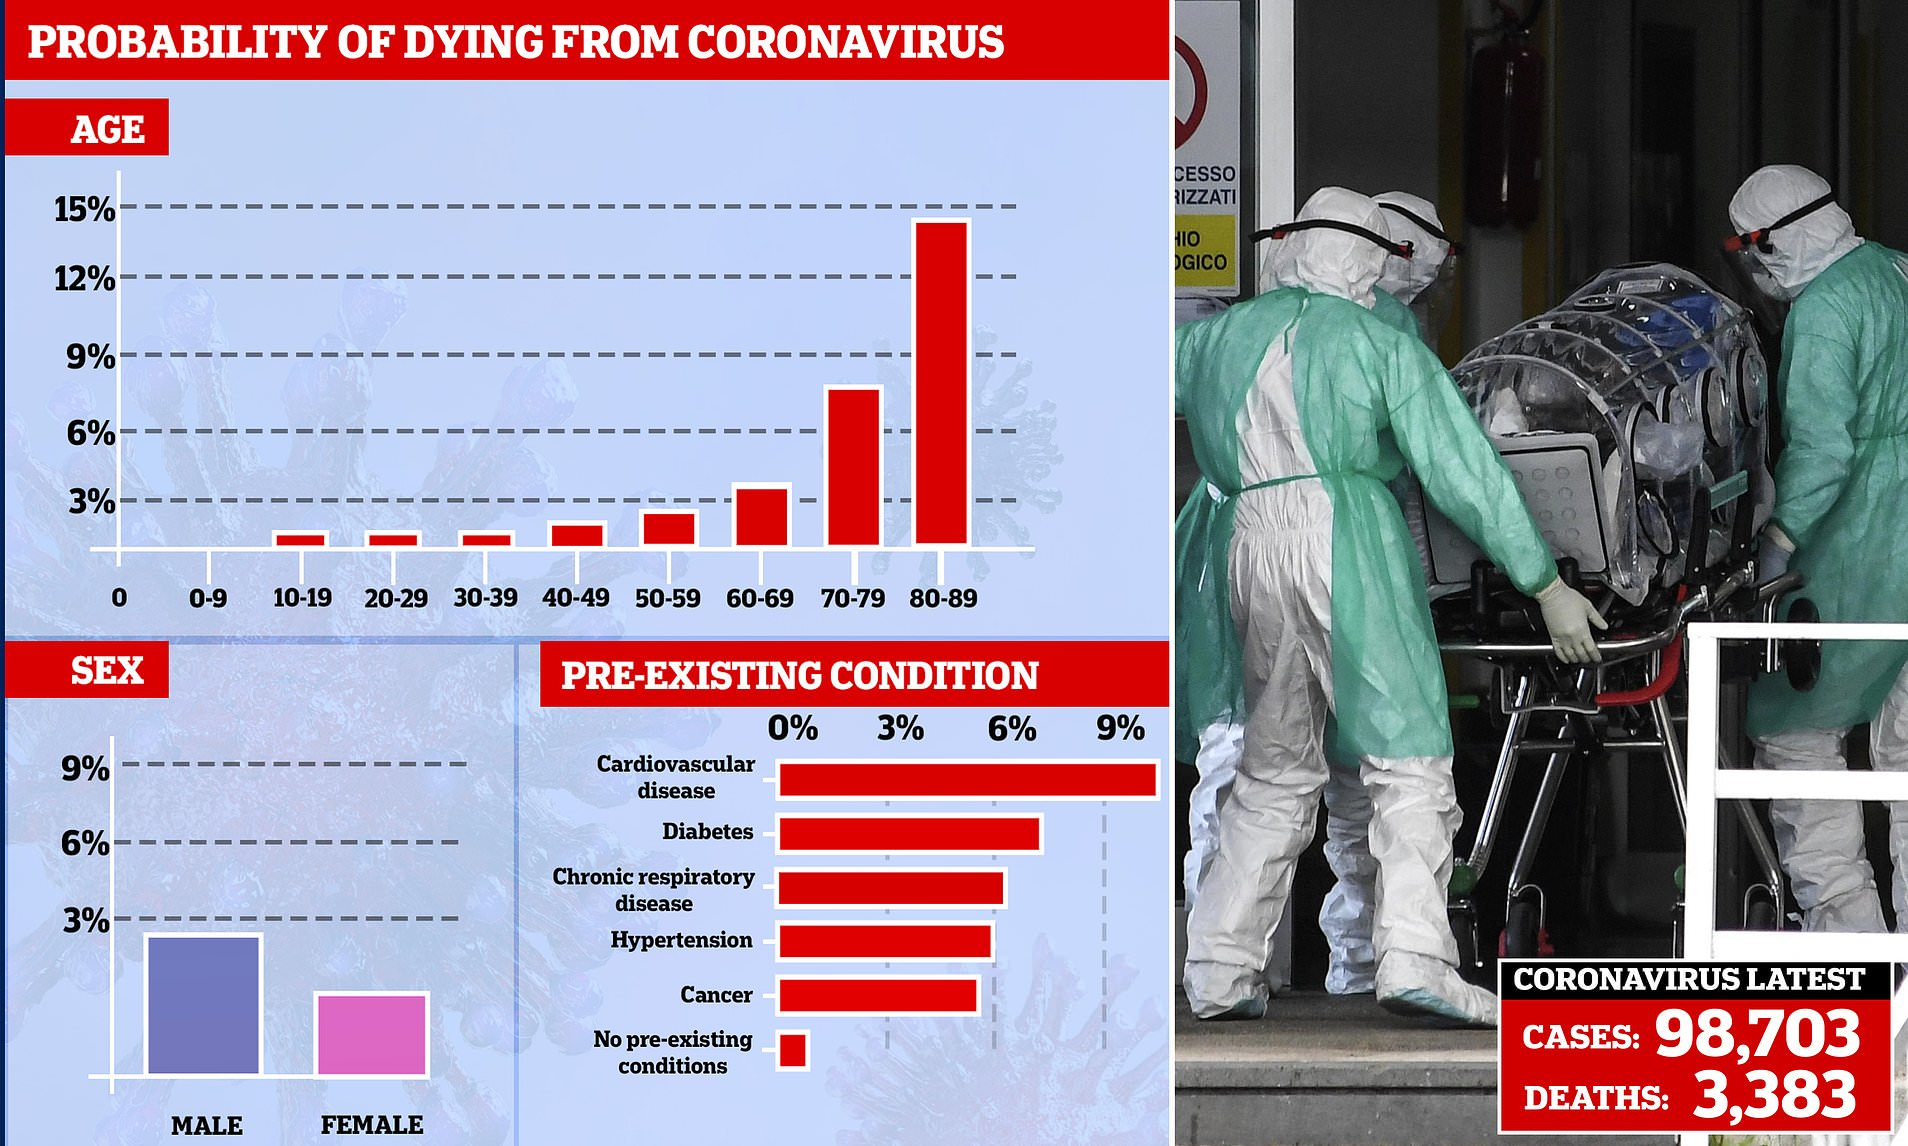 So how deadly IS coronavirus? More so for men, the elderly and the ...